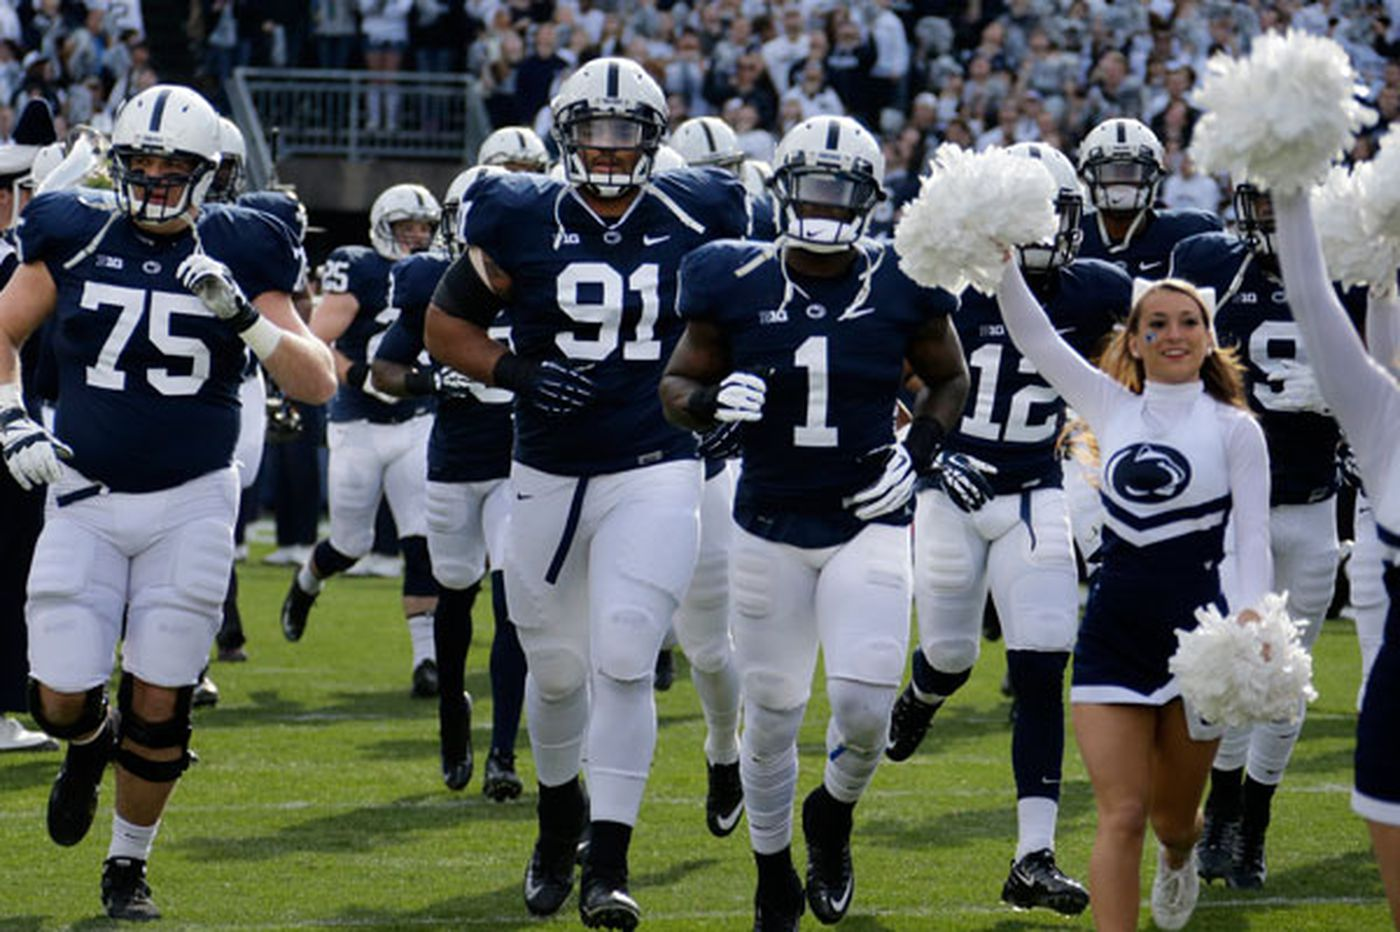 Assessing Penn State's just-completed season